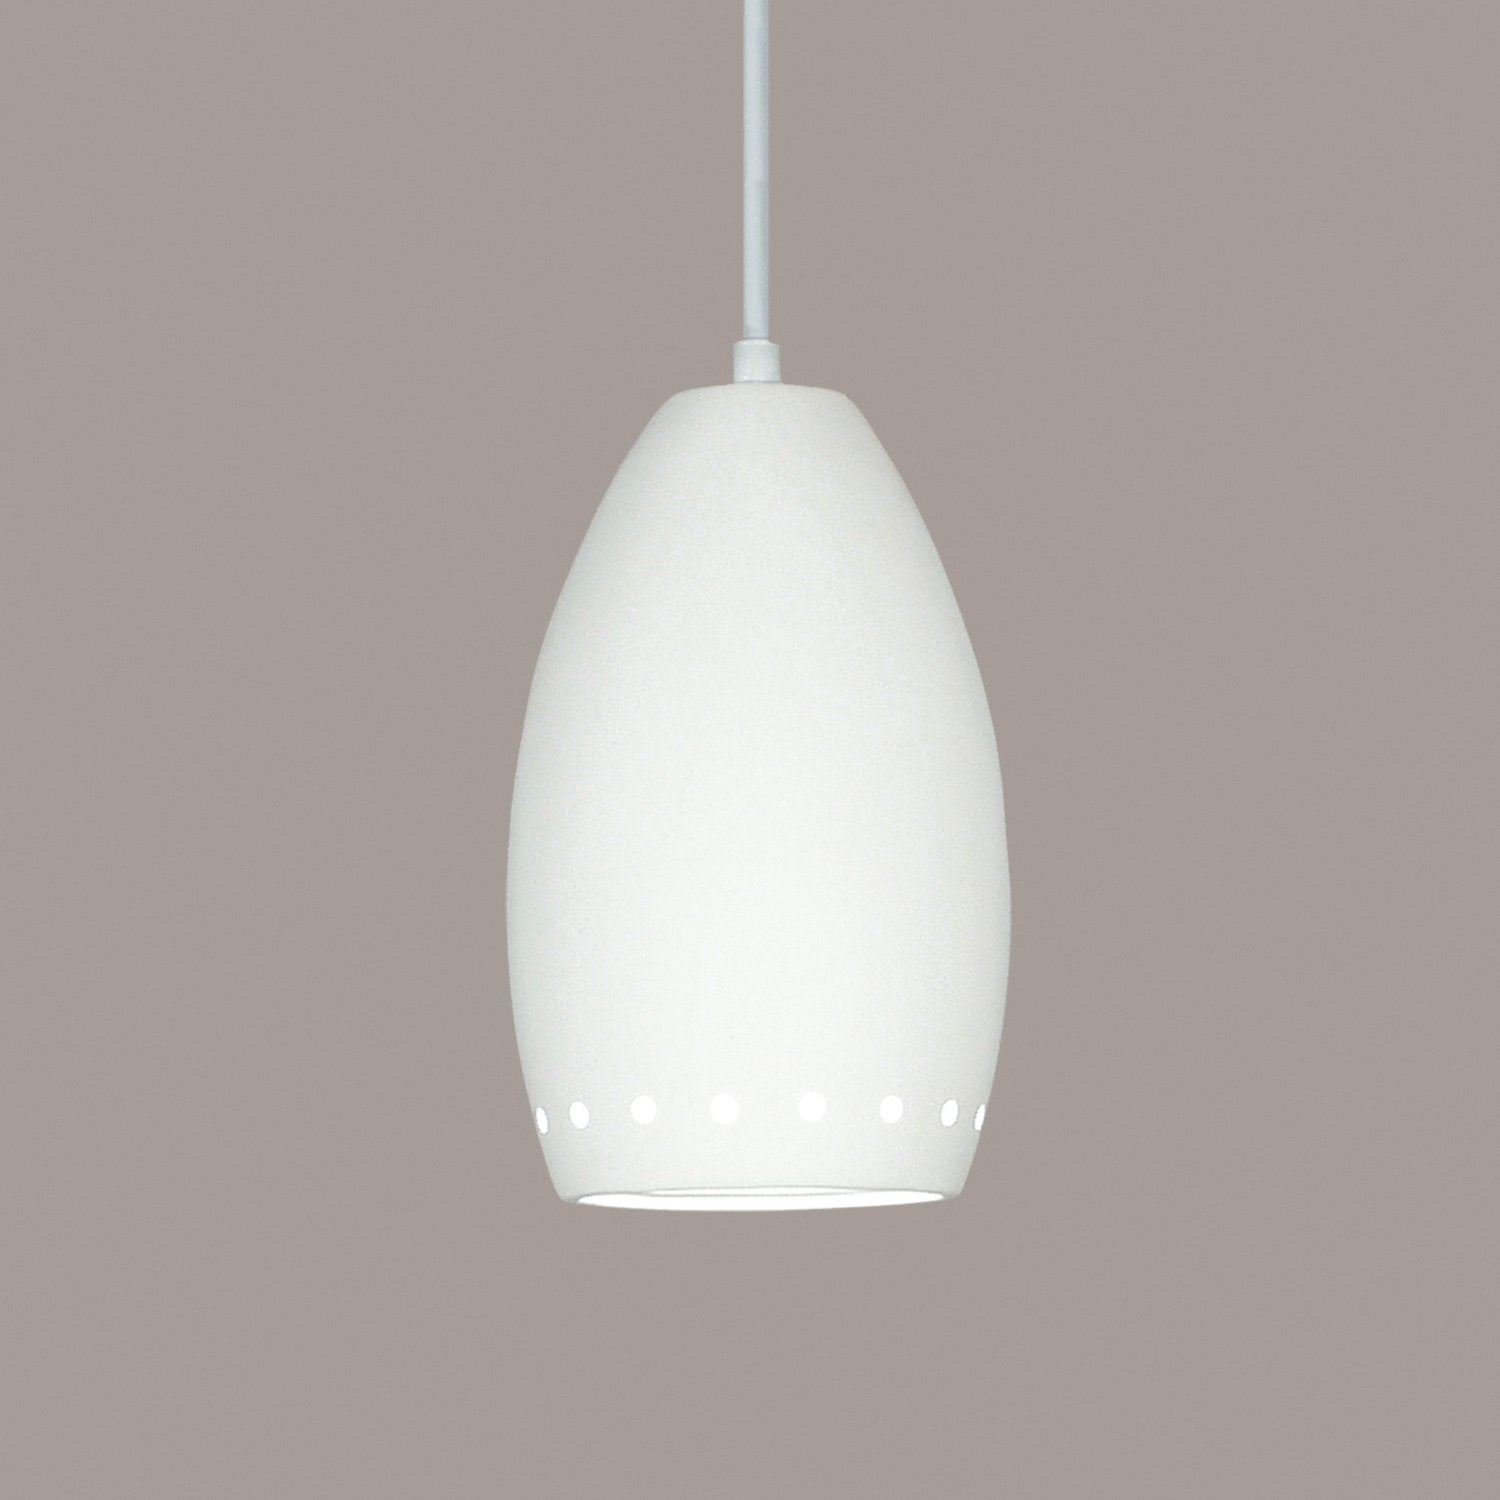 A19 P1503-LEDGU24-A21-WCC Islands of Light Collection Grenada Dusty Teal Finish Pendant